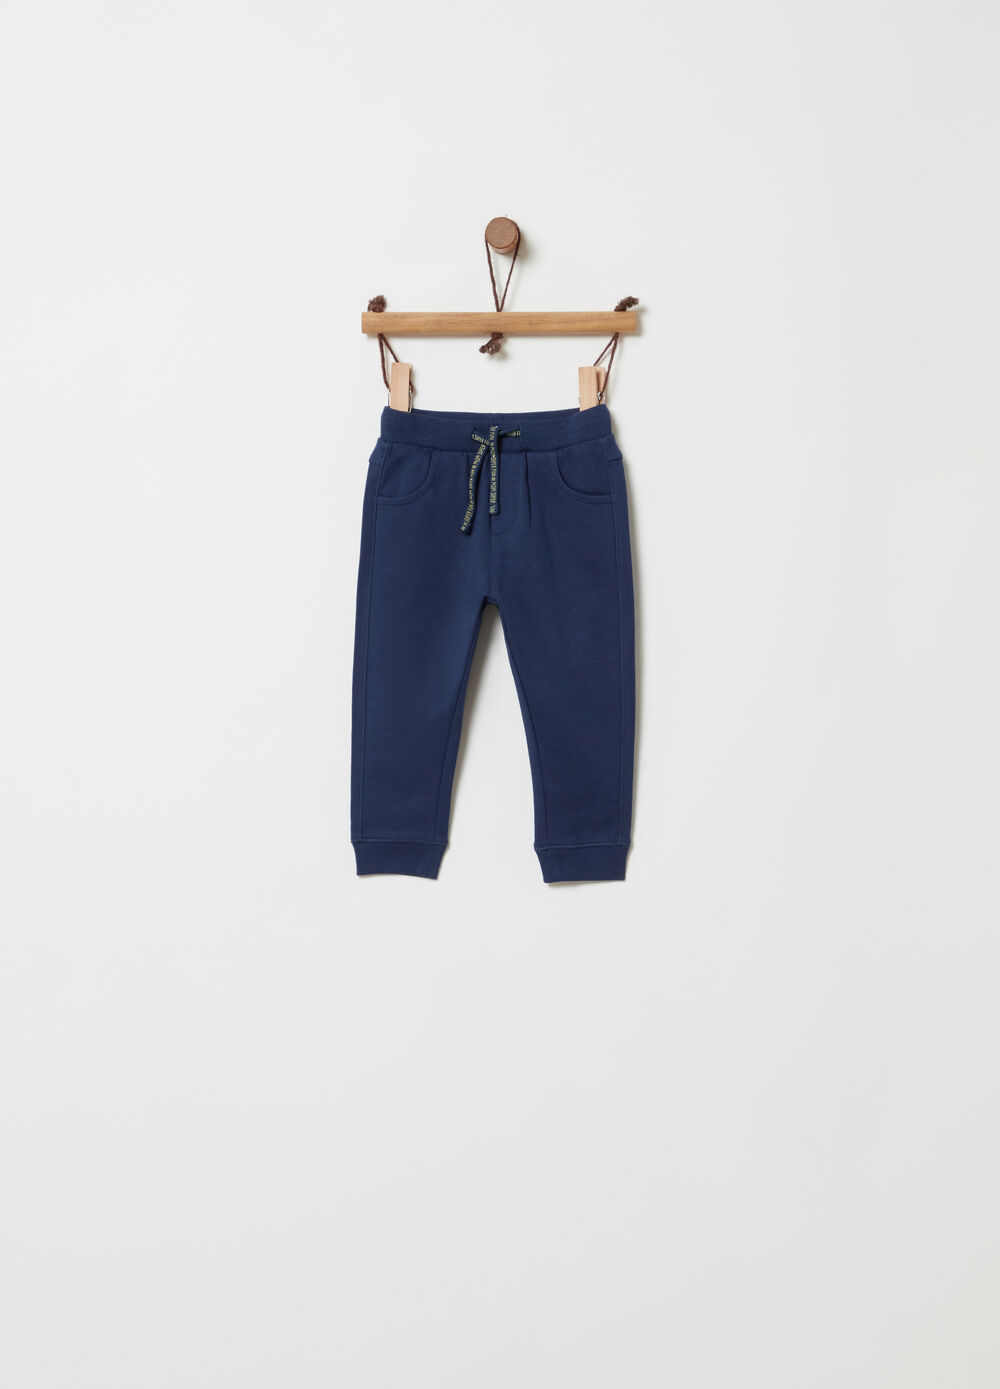 Trousers with drawstring with drawstring and ribbing